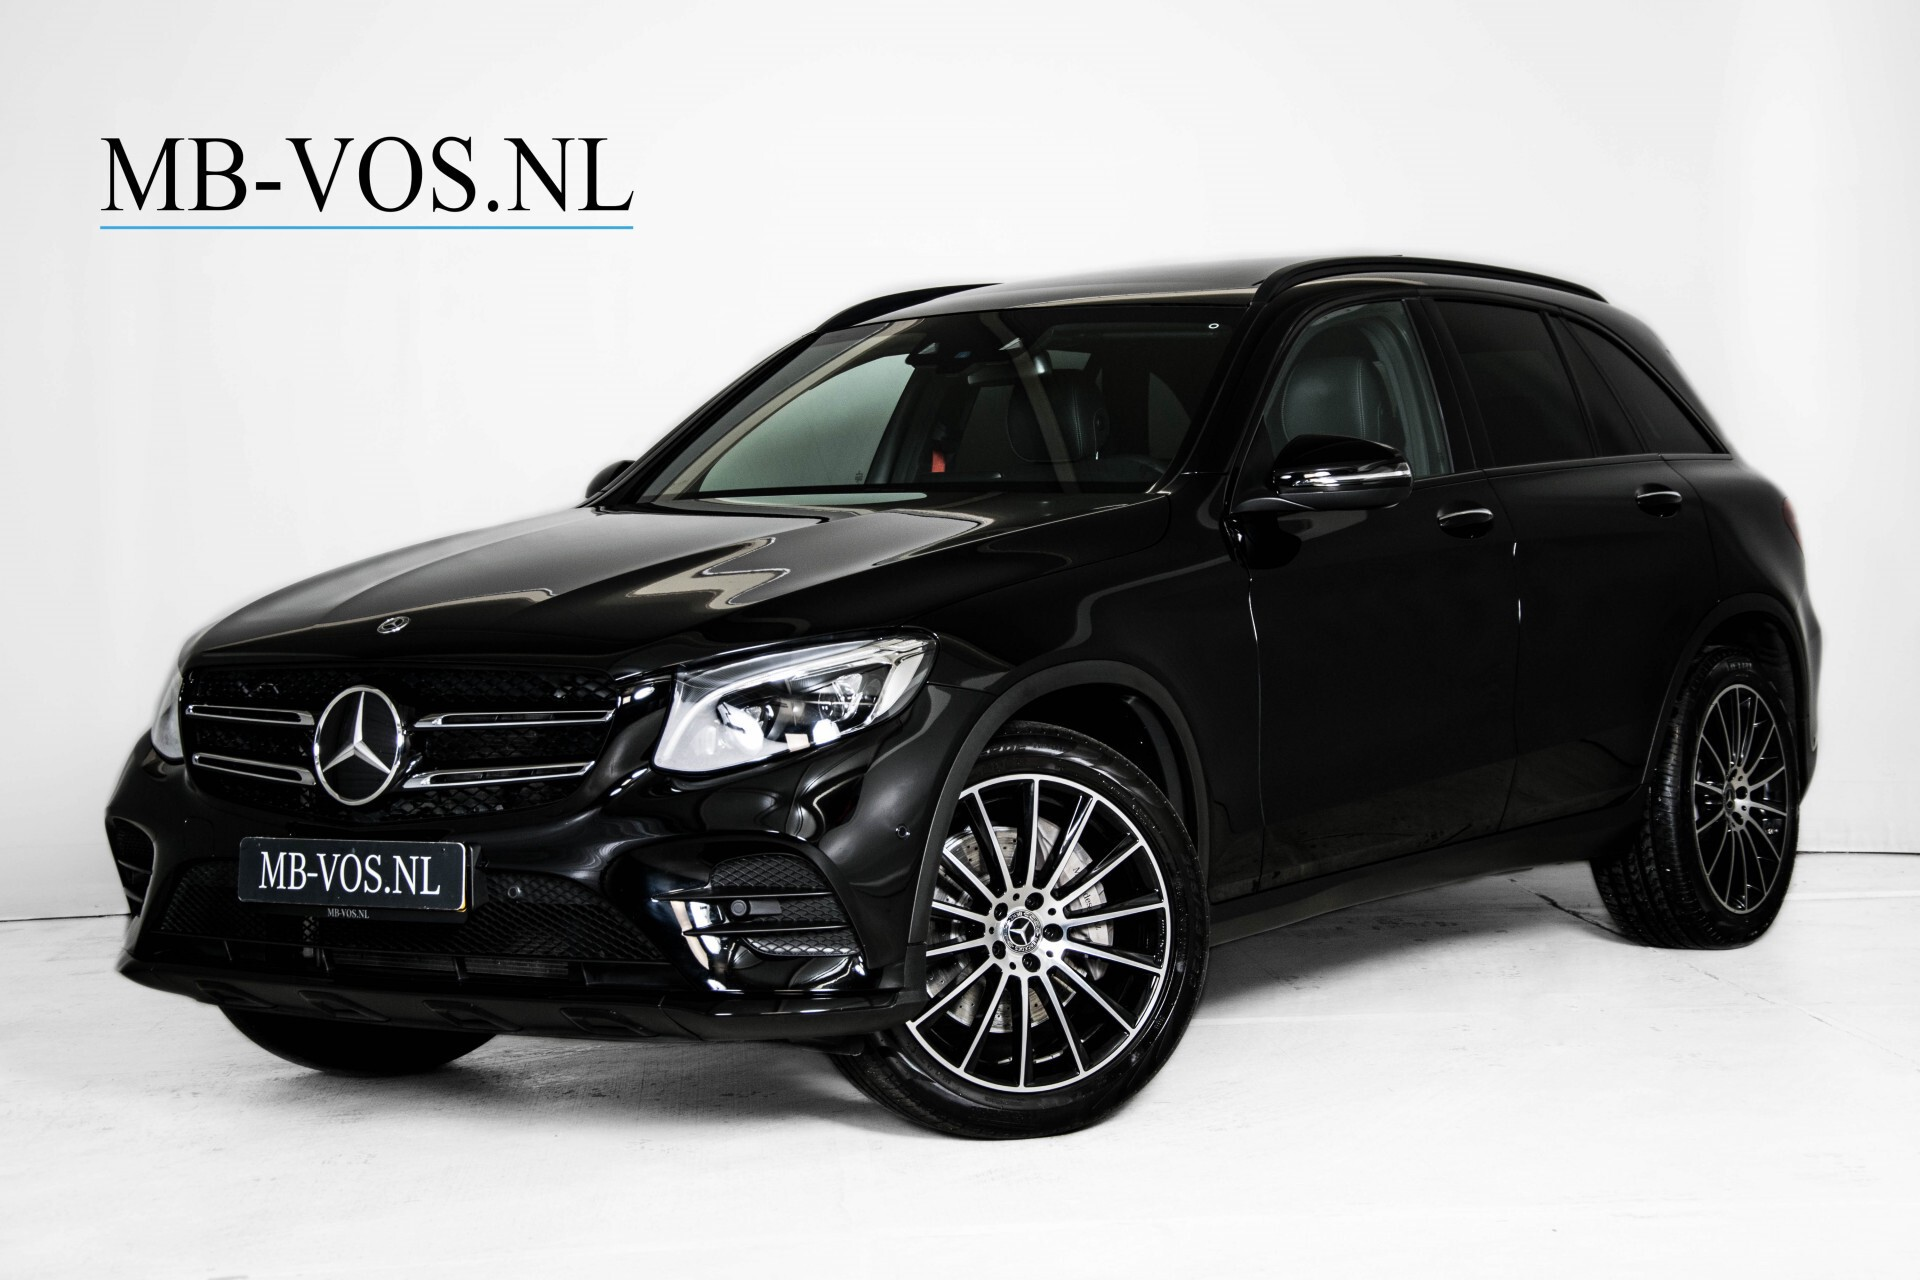 Mercedes-Benz GLC-Klasse 300 4-M AMG Panorama Distronic/Keyless/Burmester/Memory/Night Aut9 Foto 1